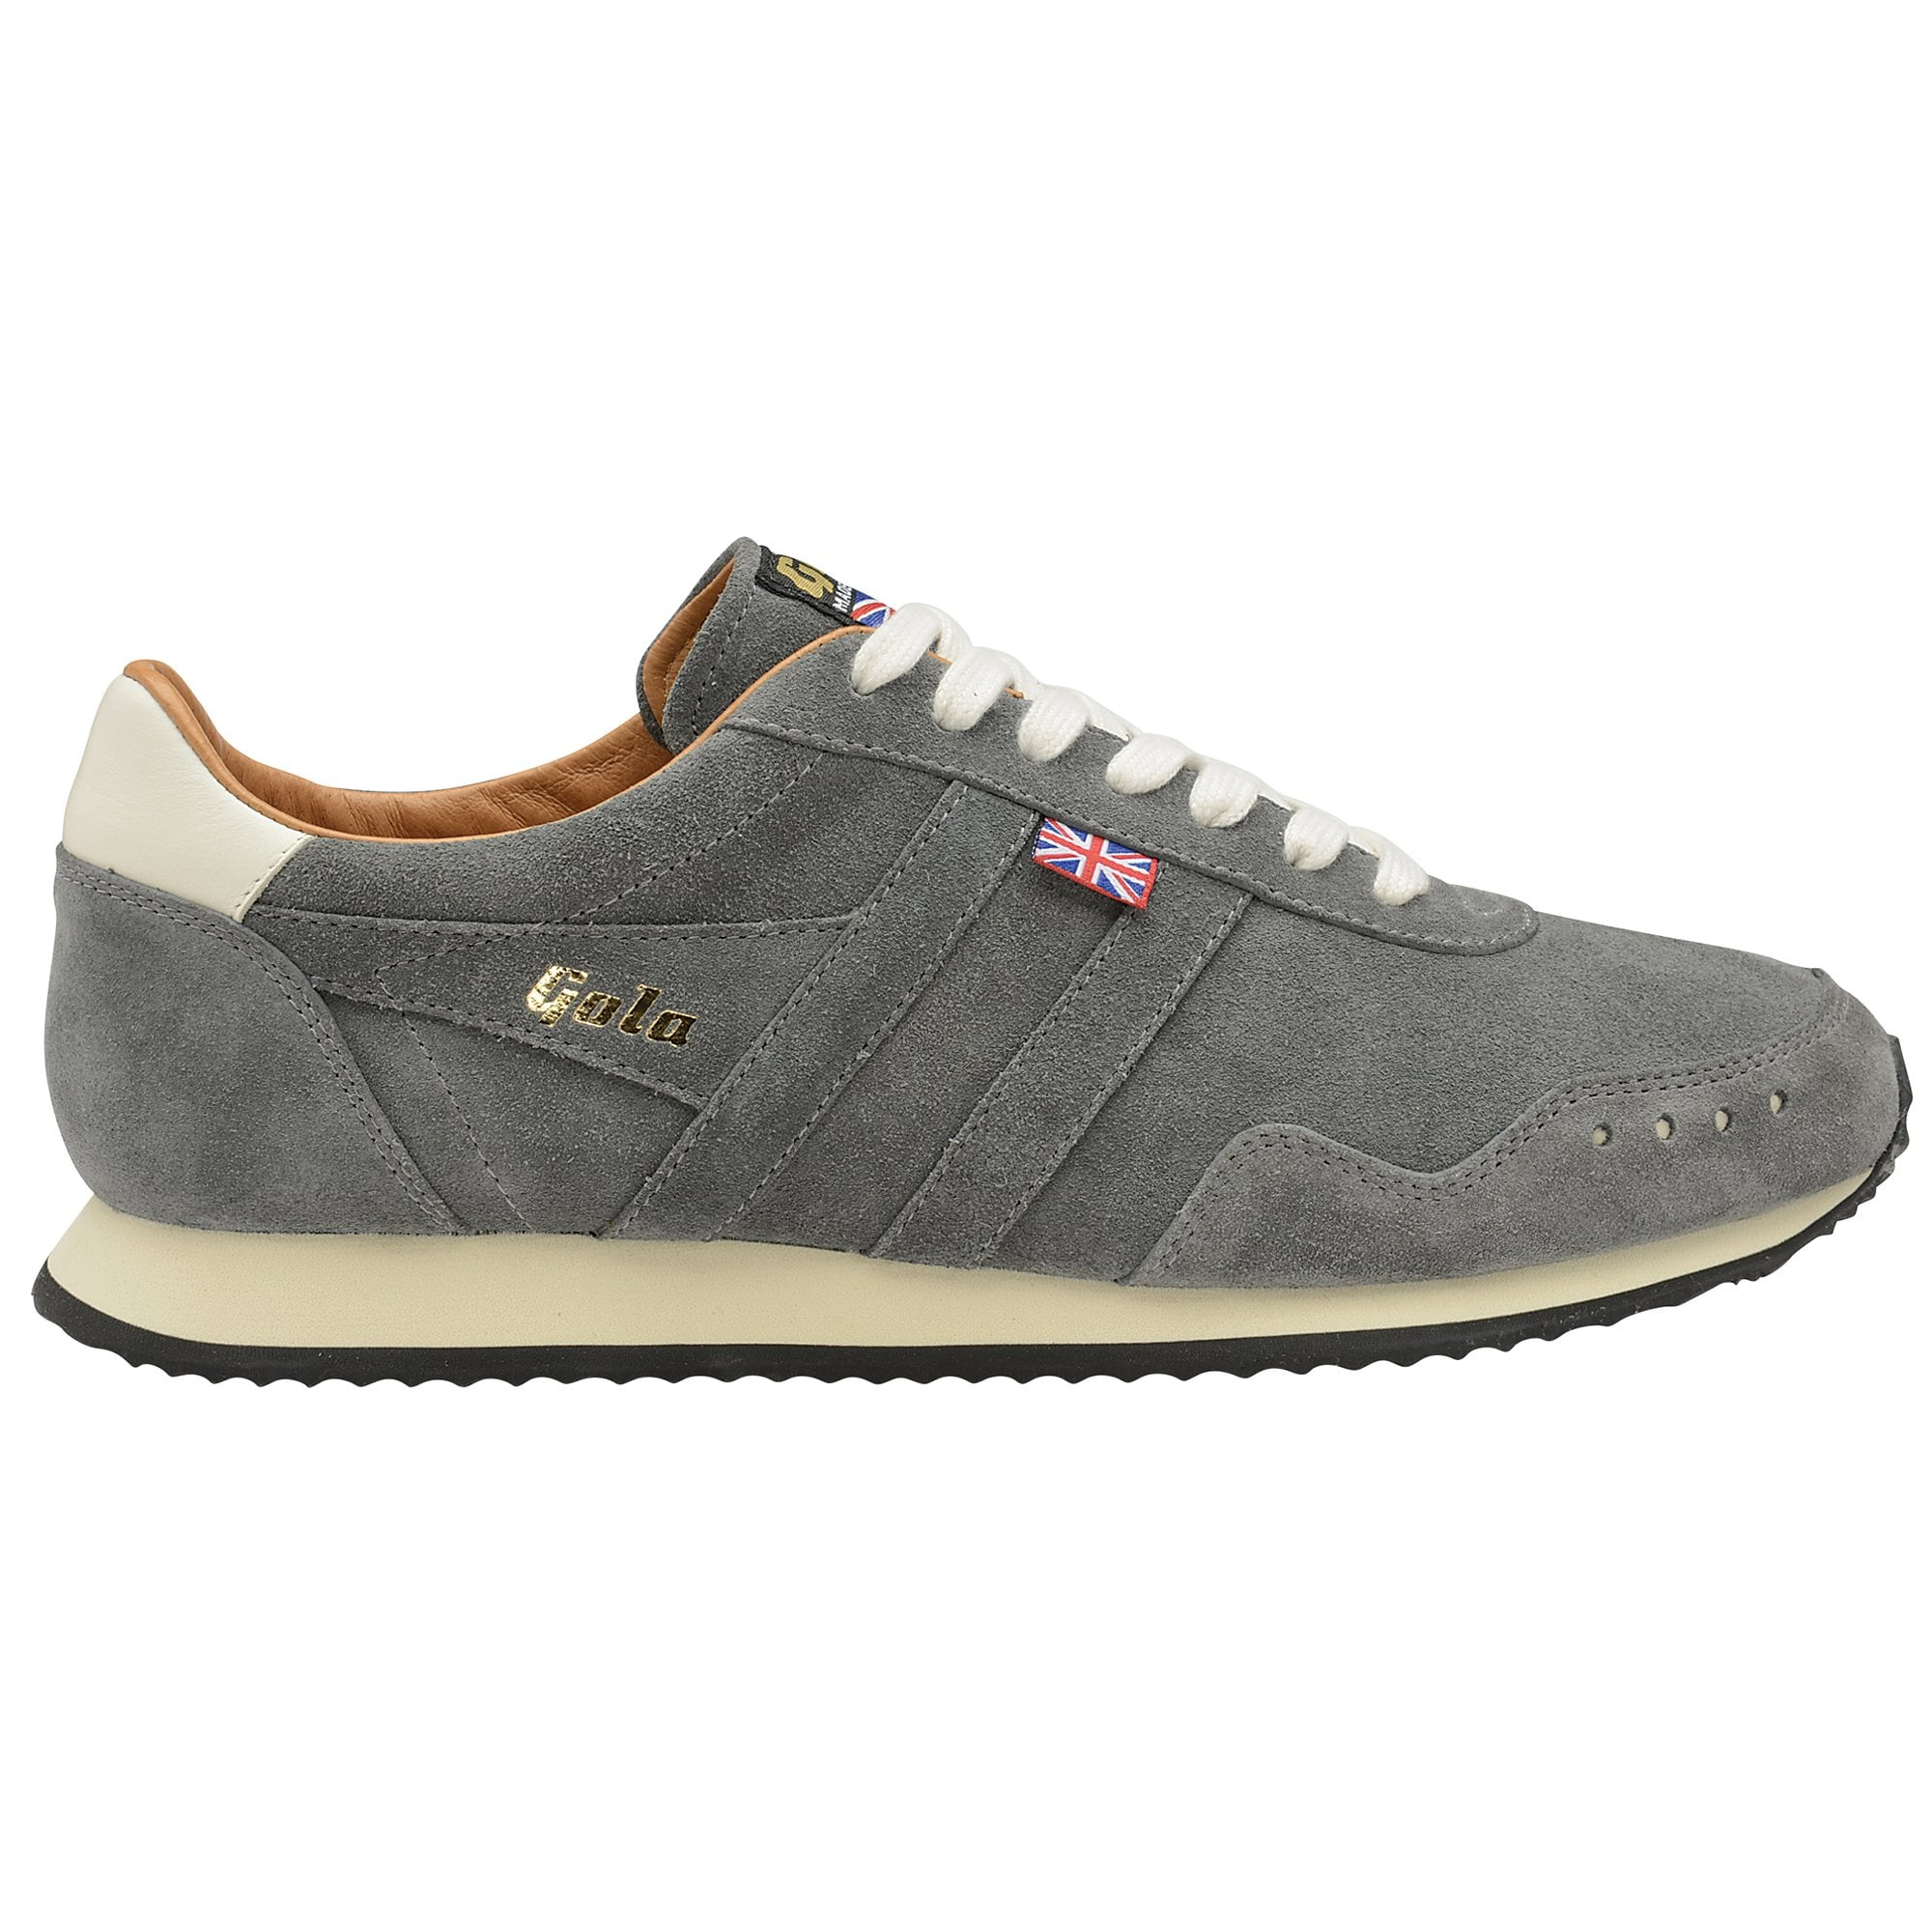 Buy Gola Track Suede 317 trainers in